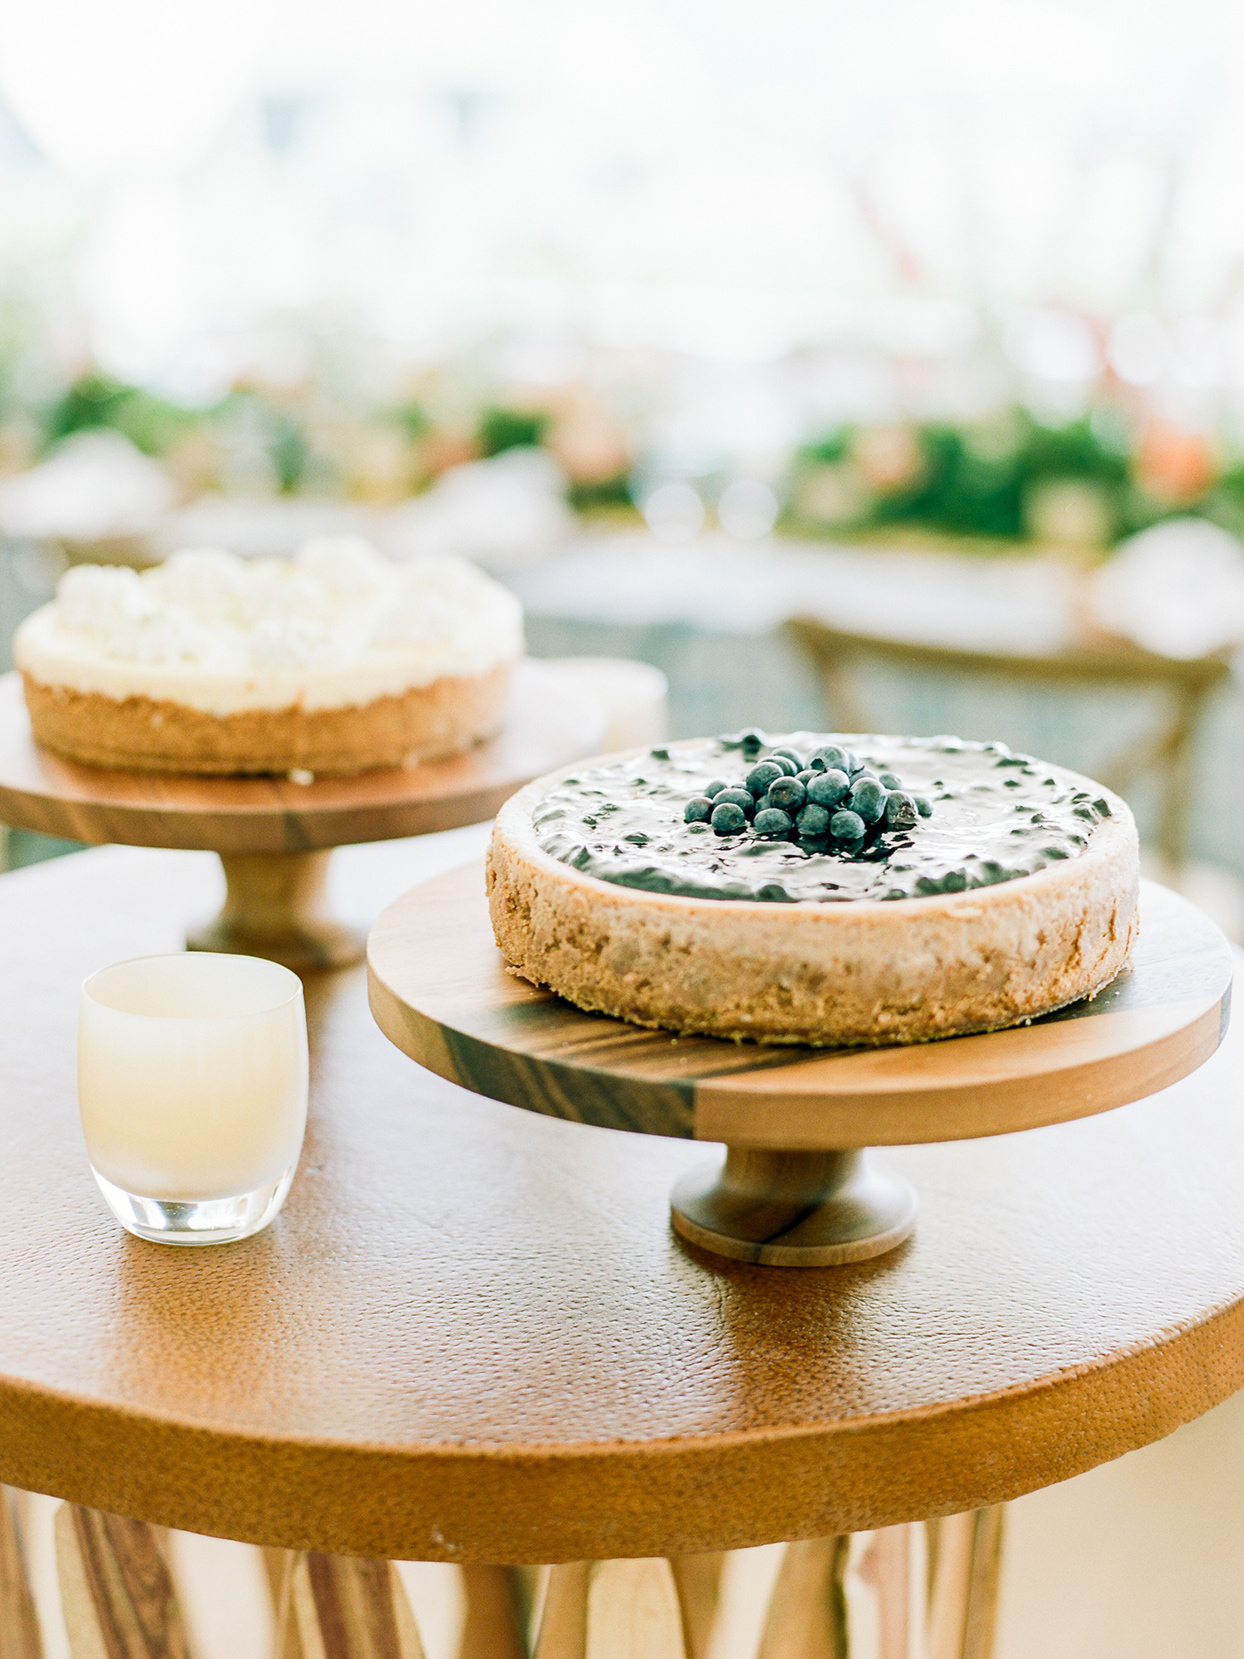 logan conor wedding cheesecake with blueberries